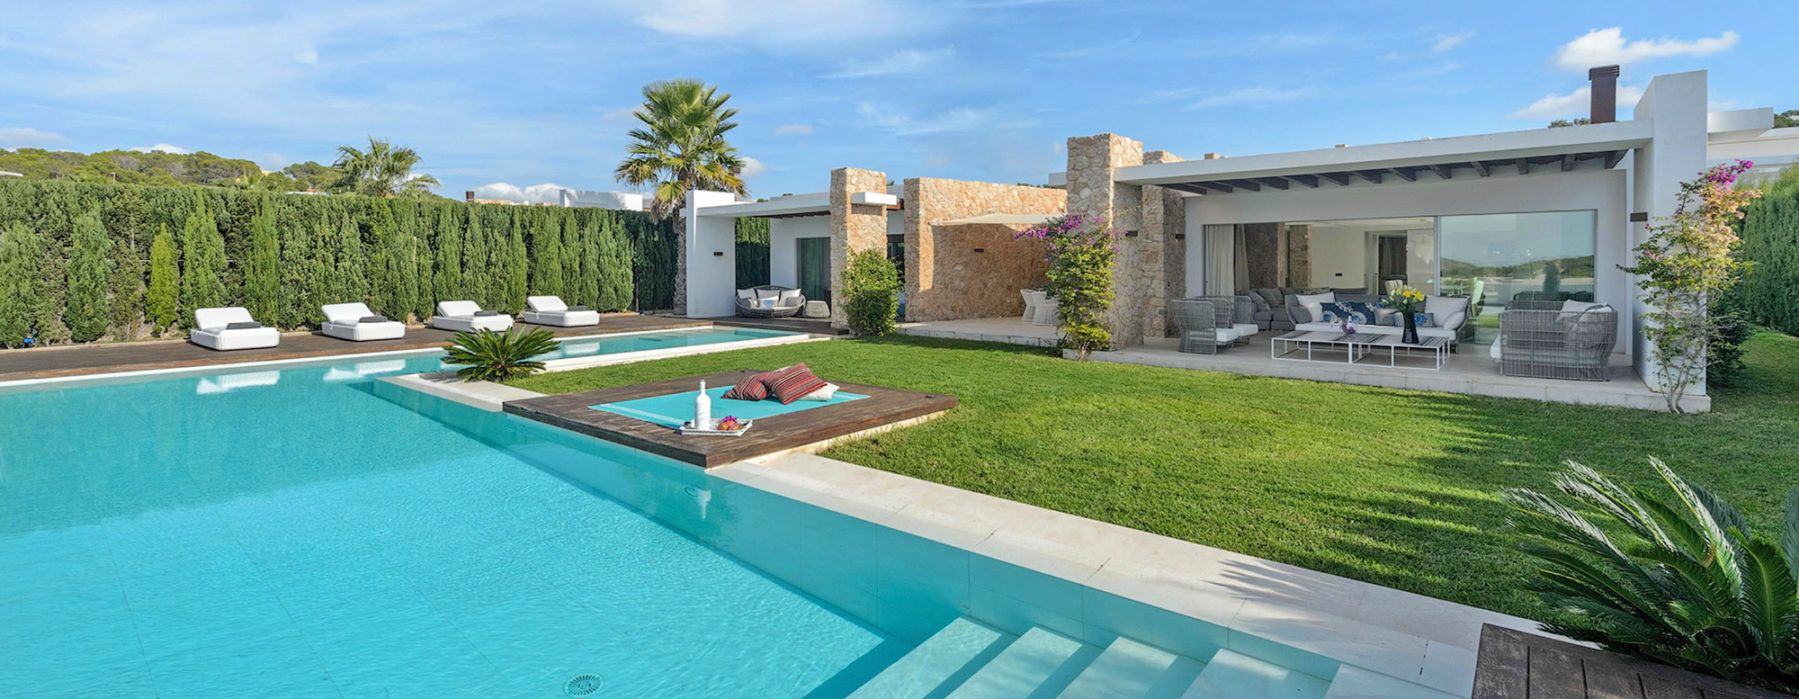 4 Bedroom Villa near Sant Josep to rent